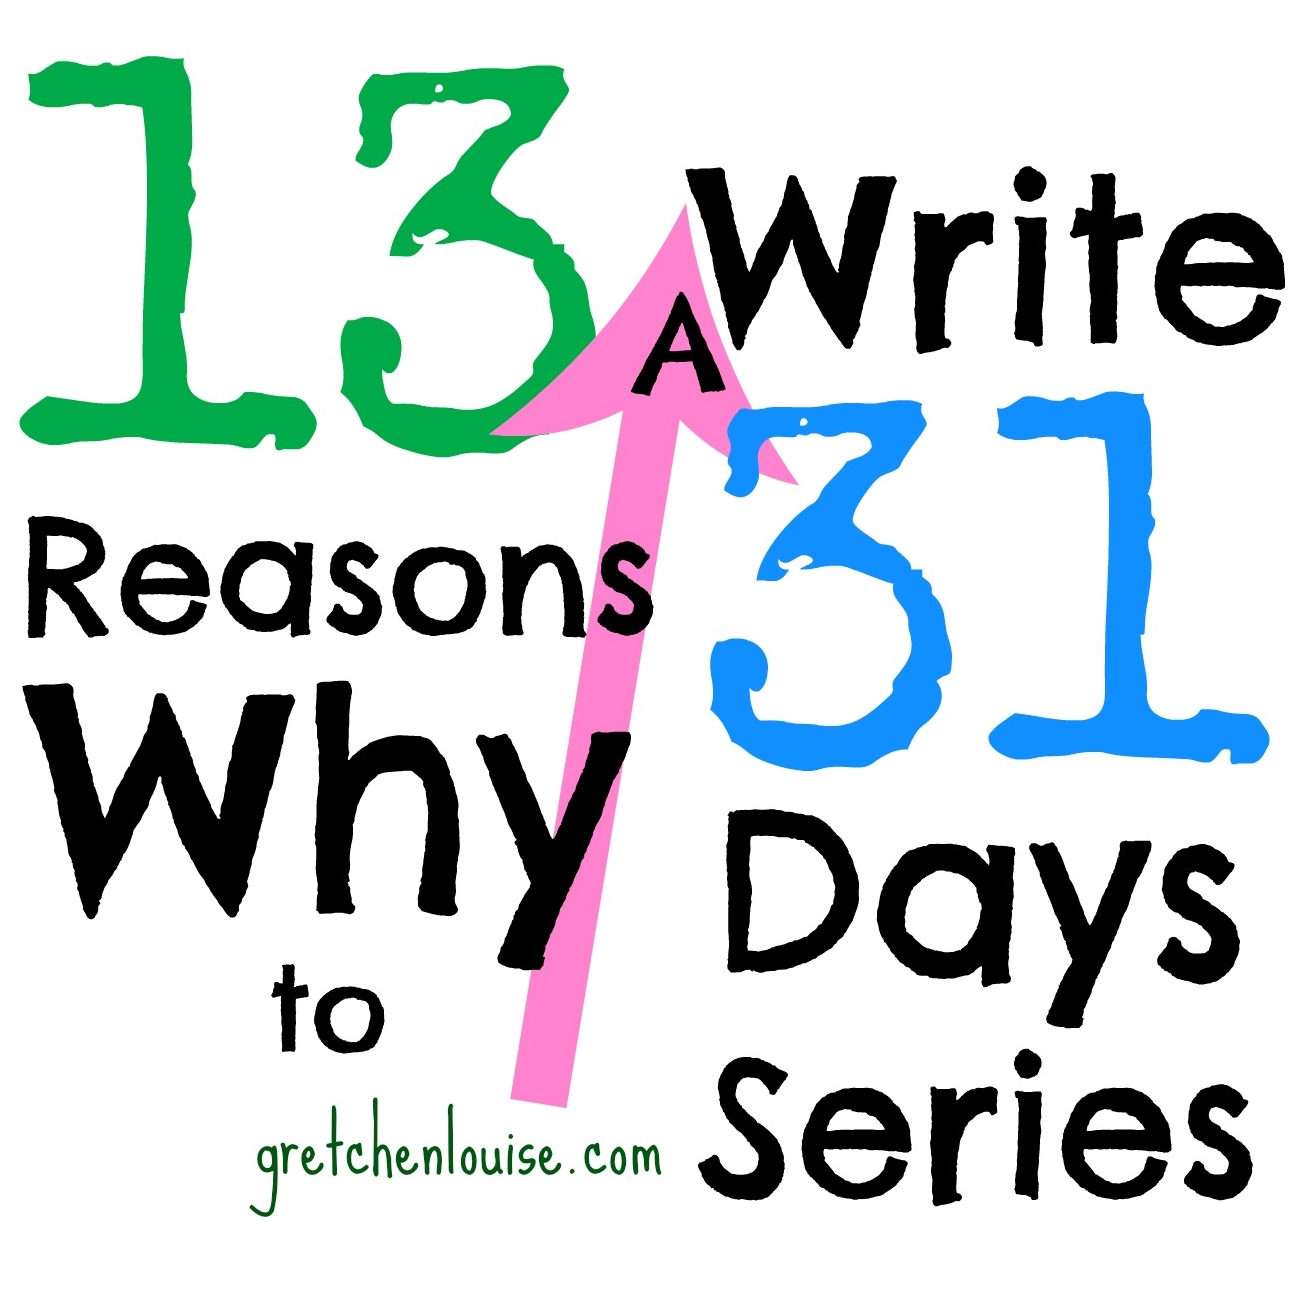 13 Reasons Why to Write a #Write31Days Series